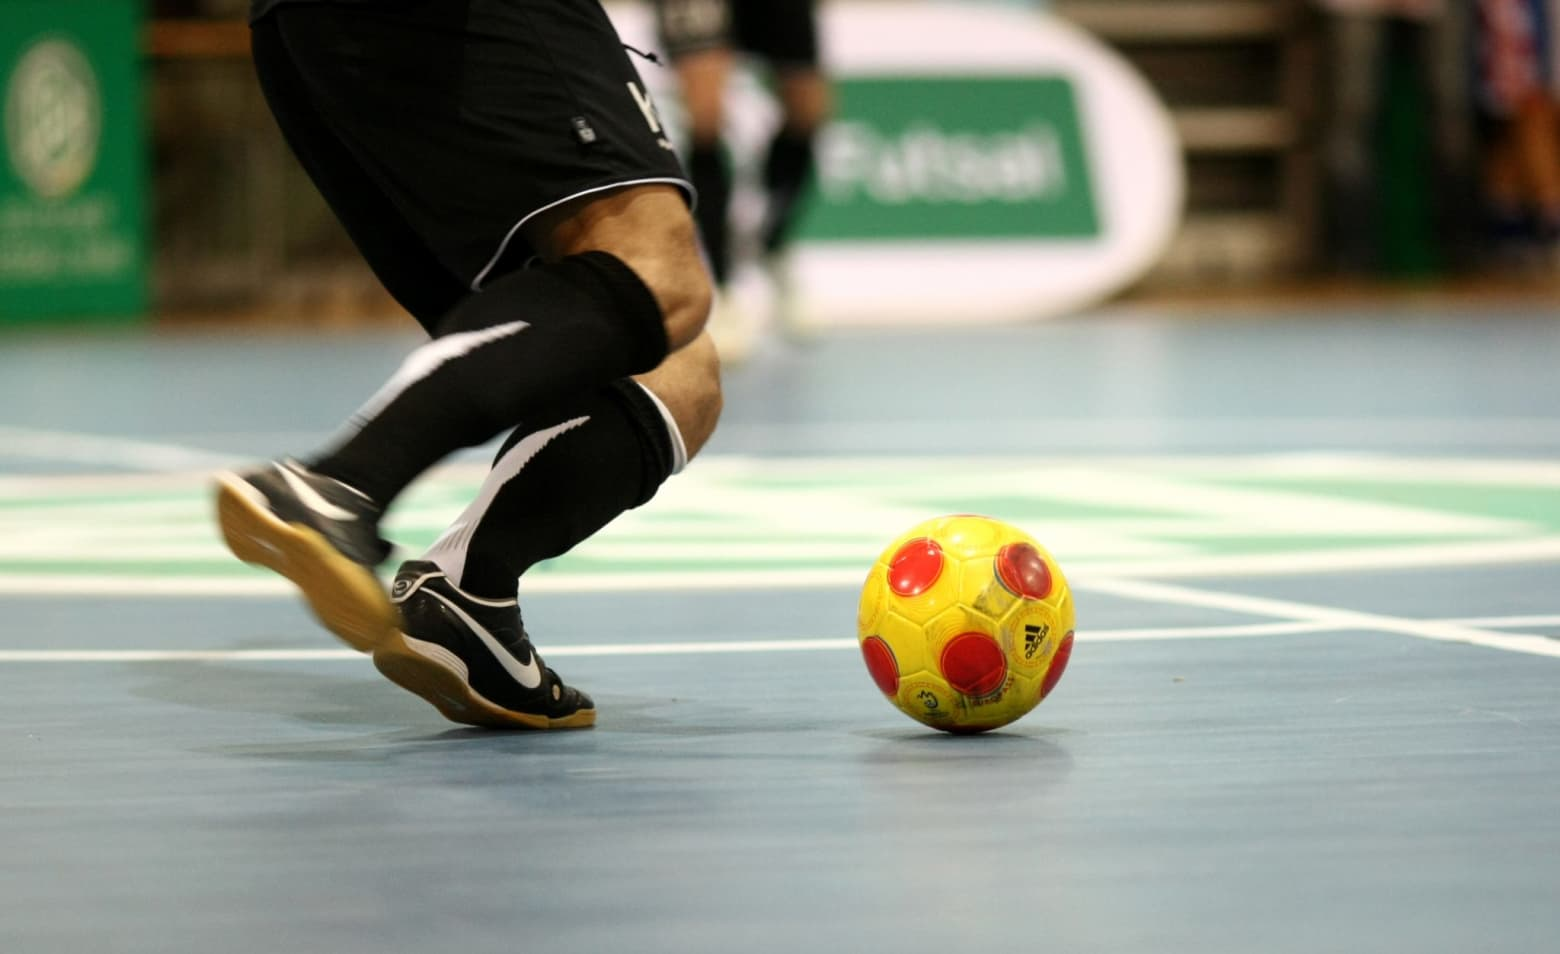 fd5f07222ca Are you ready to kick field goals in style  Investing in the best indoor  soccer shoes will help you do that